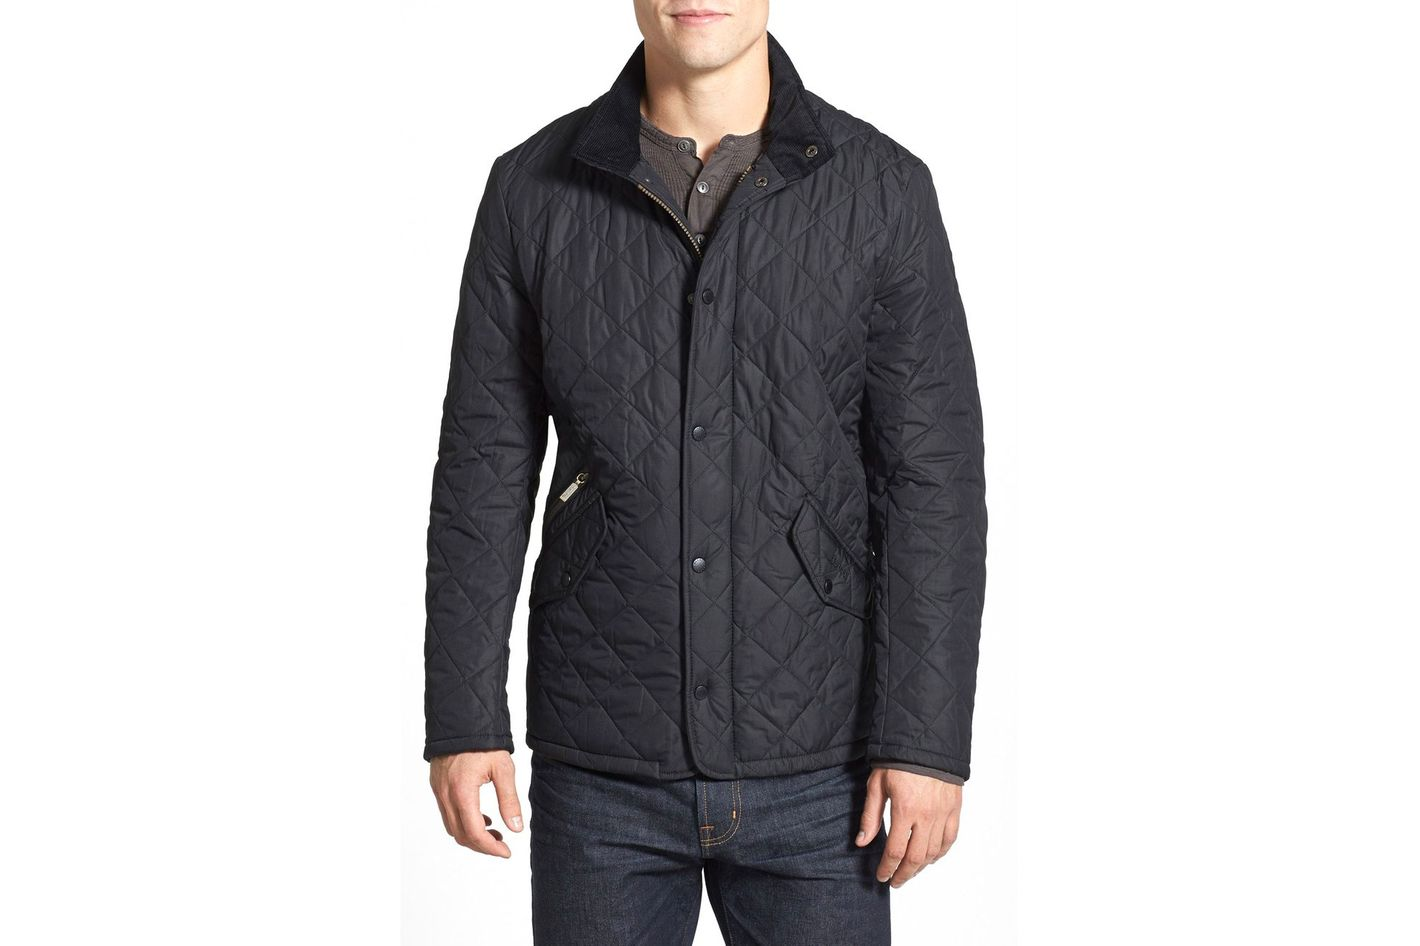 Barbour 'Chelsea' Regular Fit Quilted Jacket